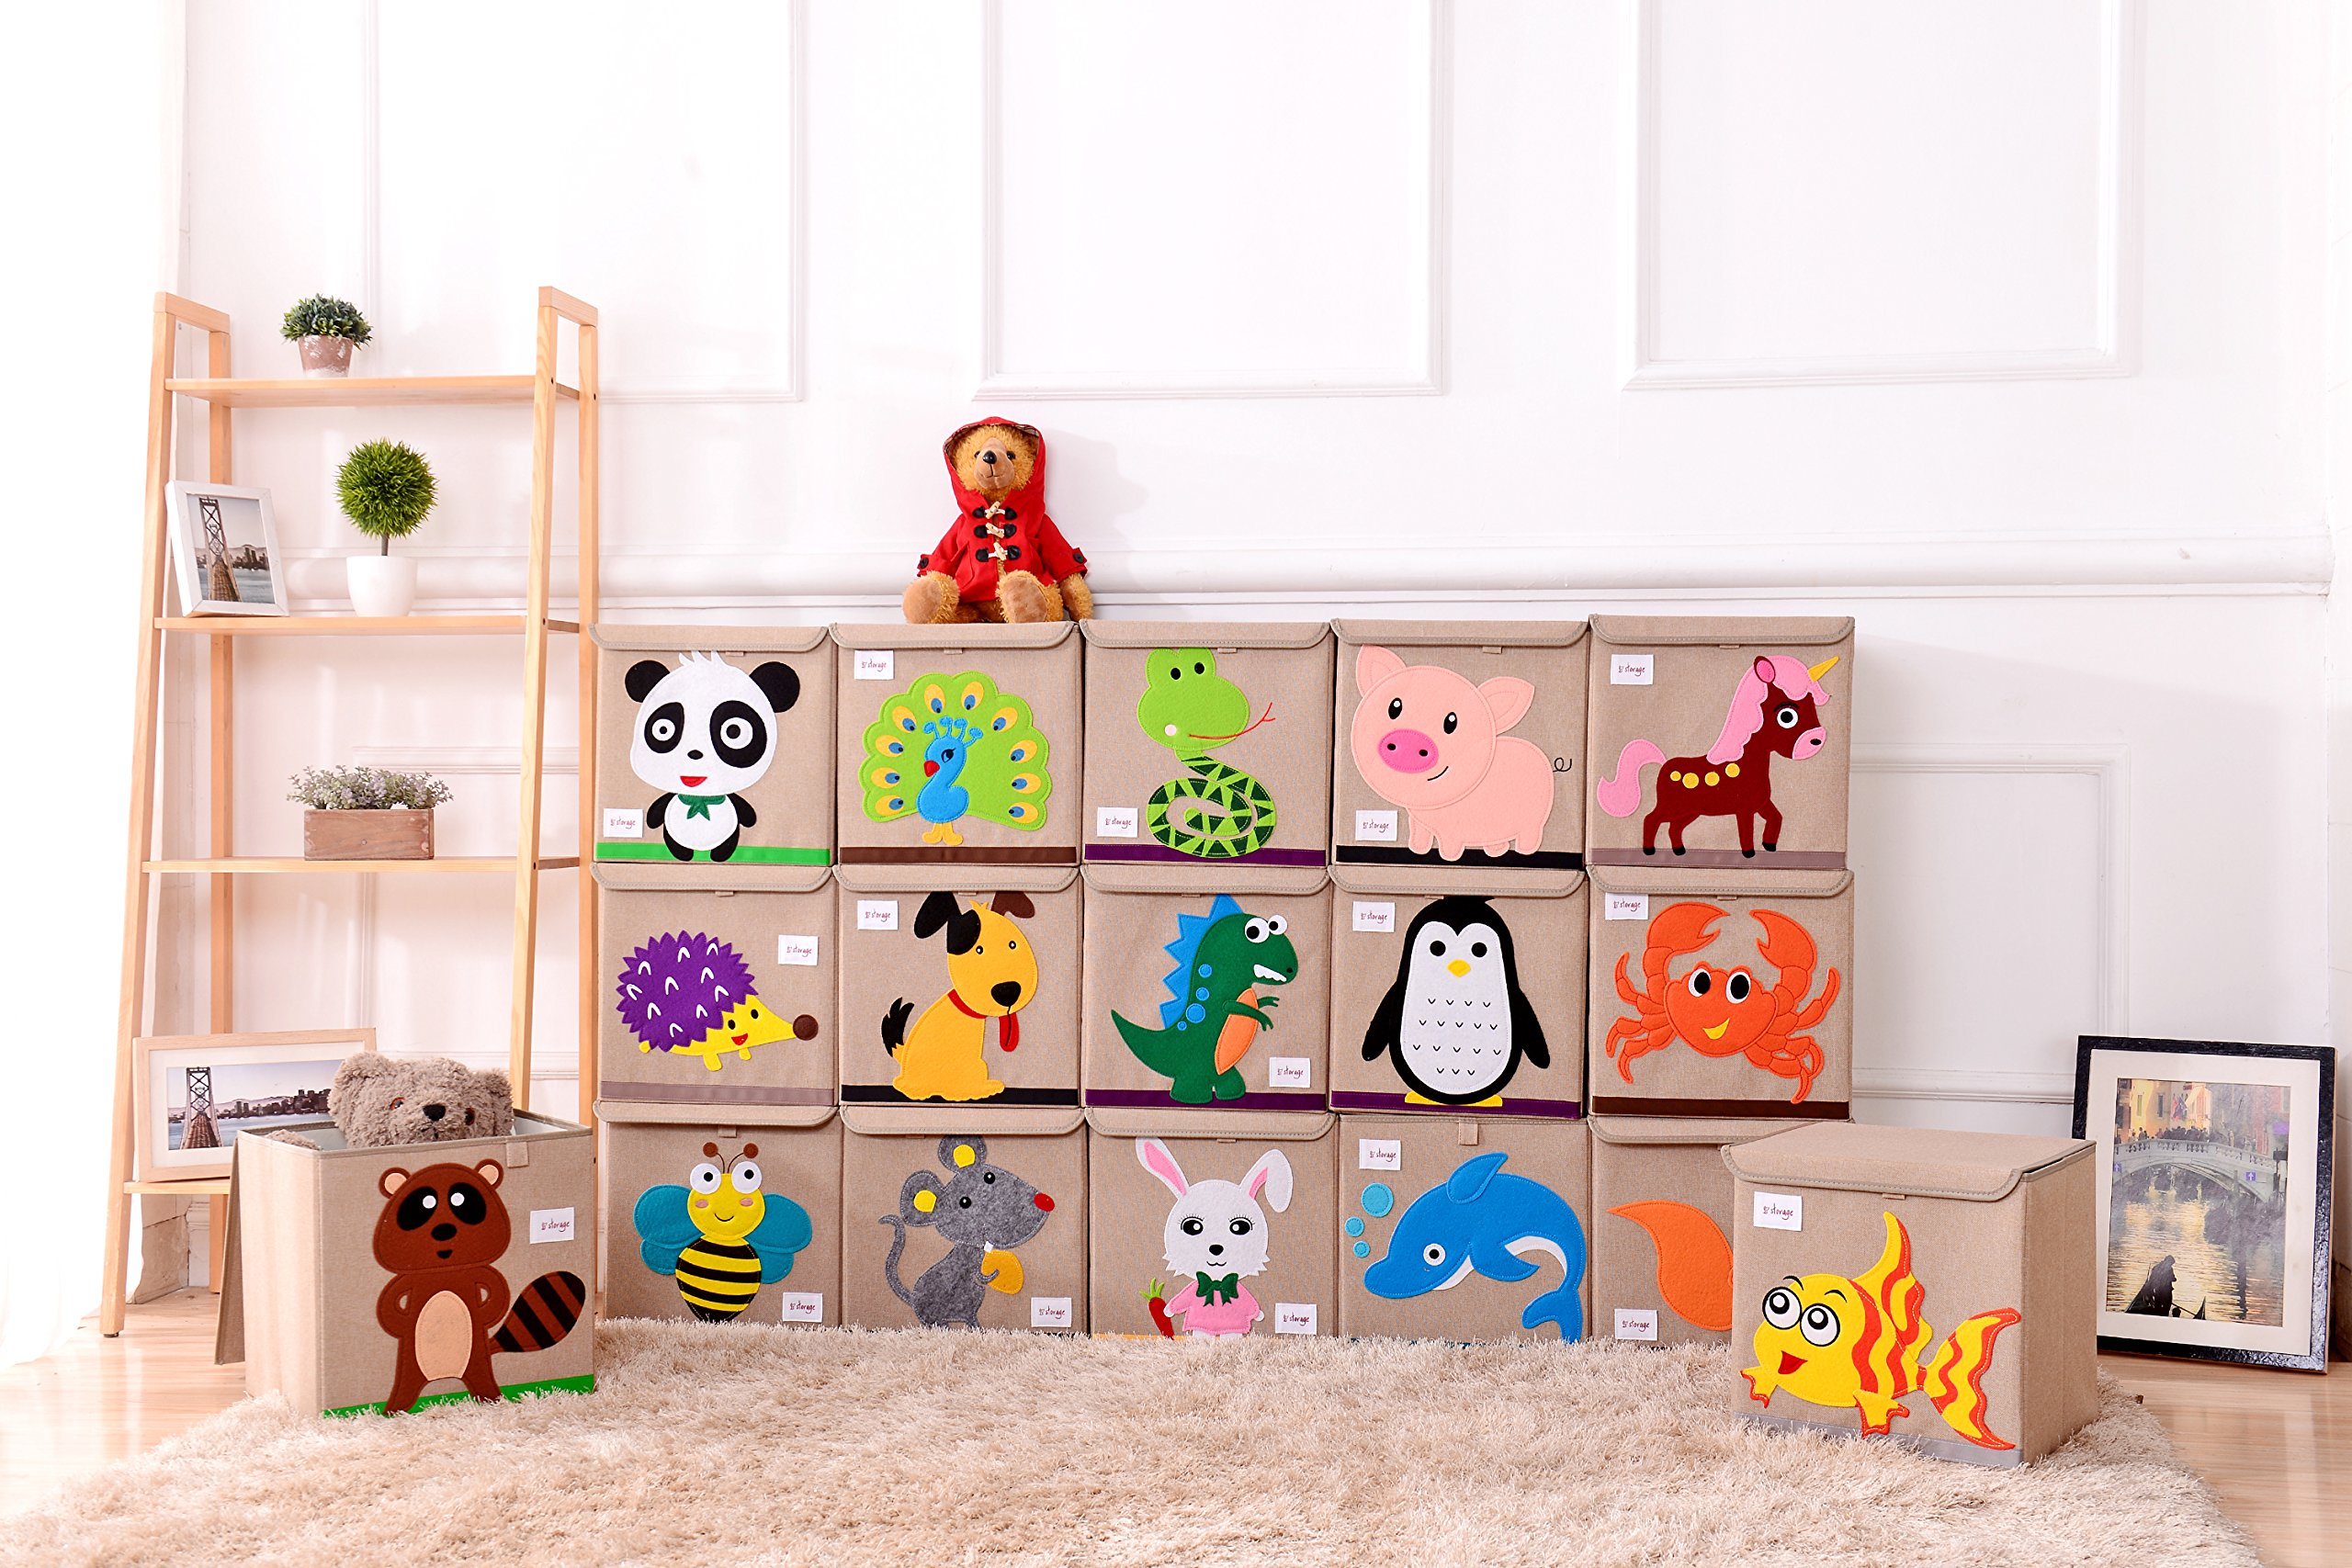 HIYAGON 13''x13''x13''Storage Box/Bin/Cube/Basket/Chest/Organizers with Lids for Bedroom, Nursery, Playroom, Toys, Clothing, Blankets, Books, More(Hedgehog) by HIYAGON (Image #7)